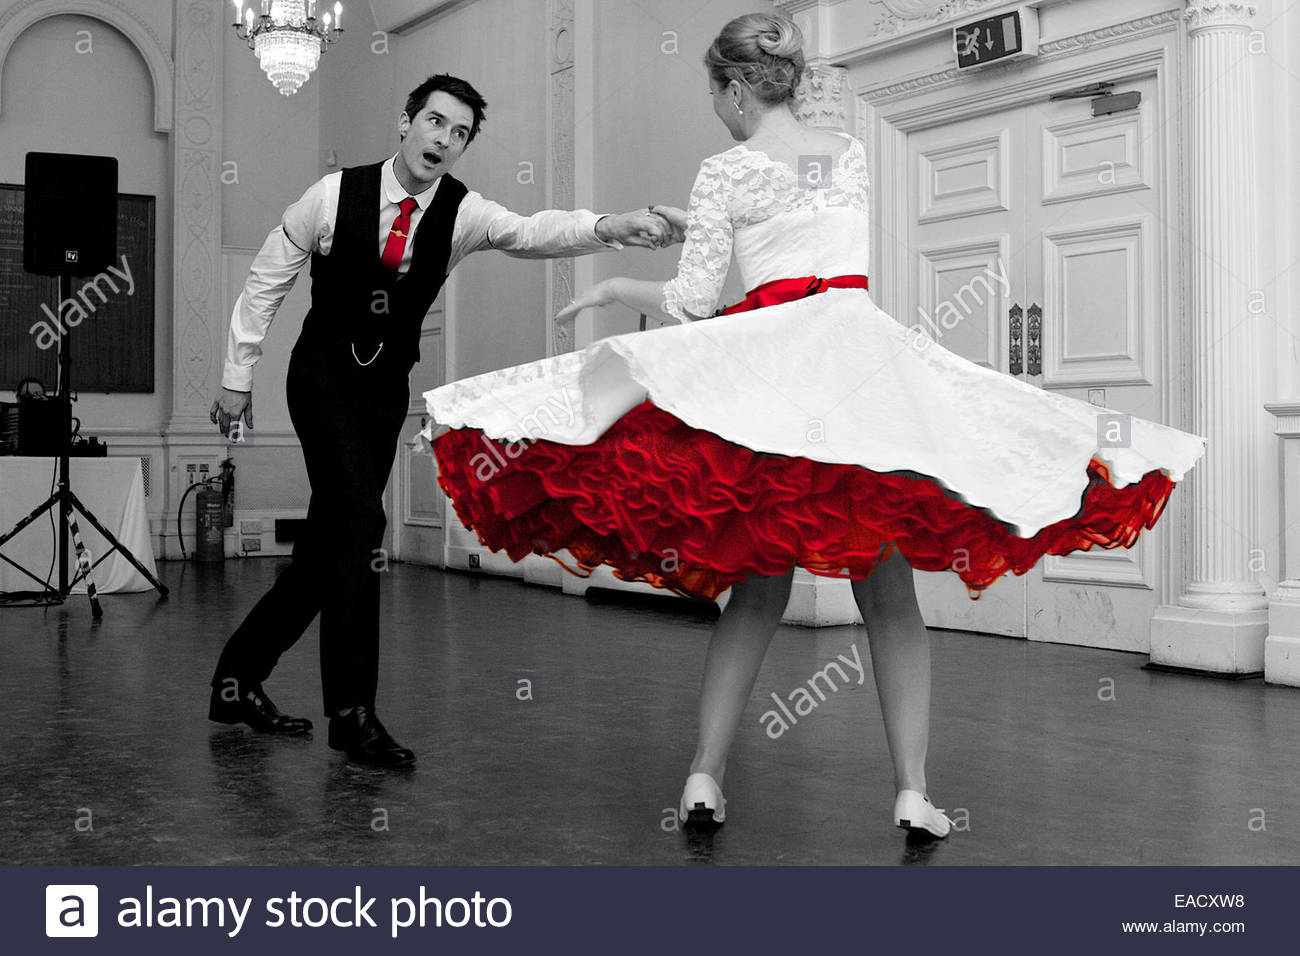 Wedding Couple Swing Dancing Red Petticoat Dress